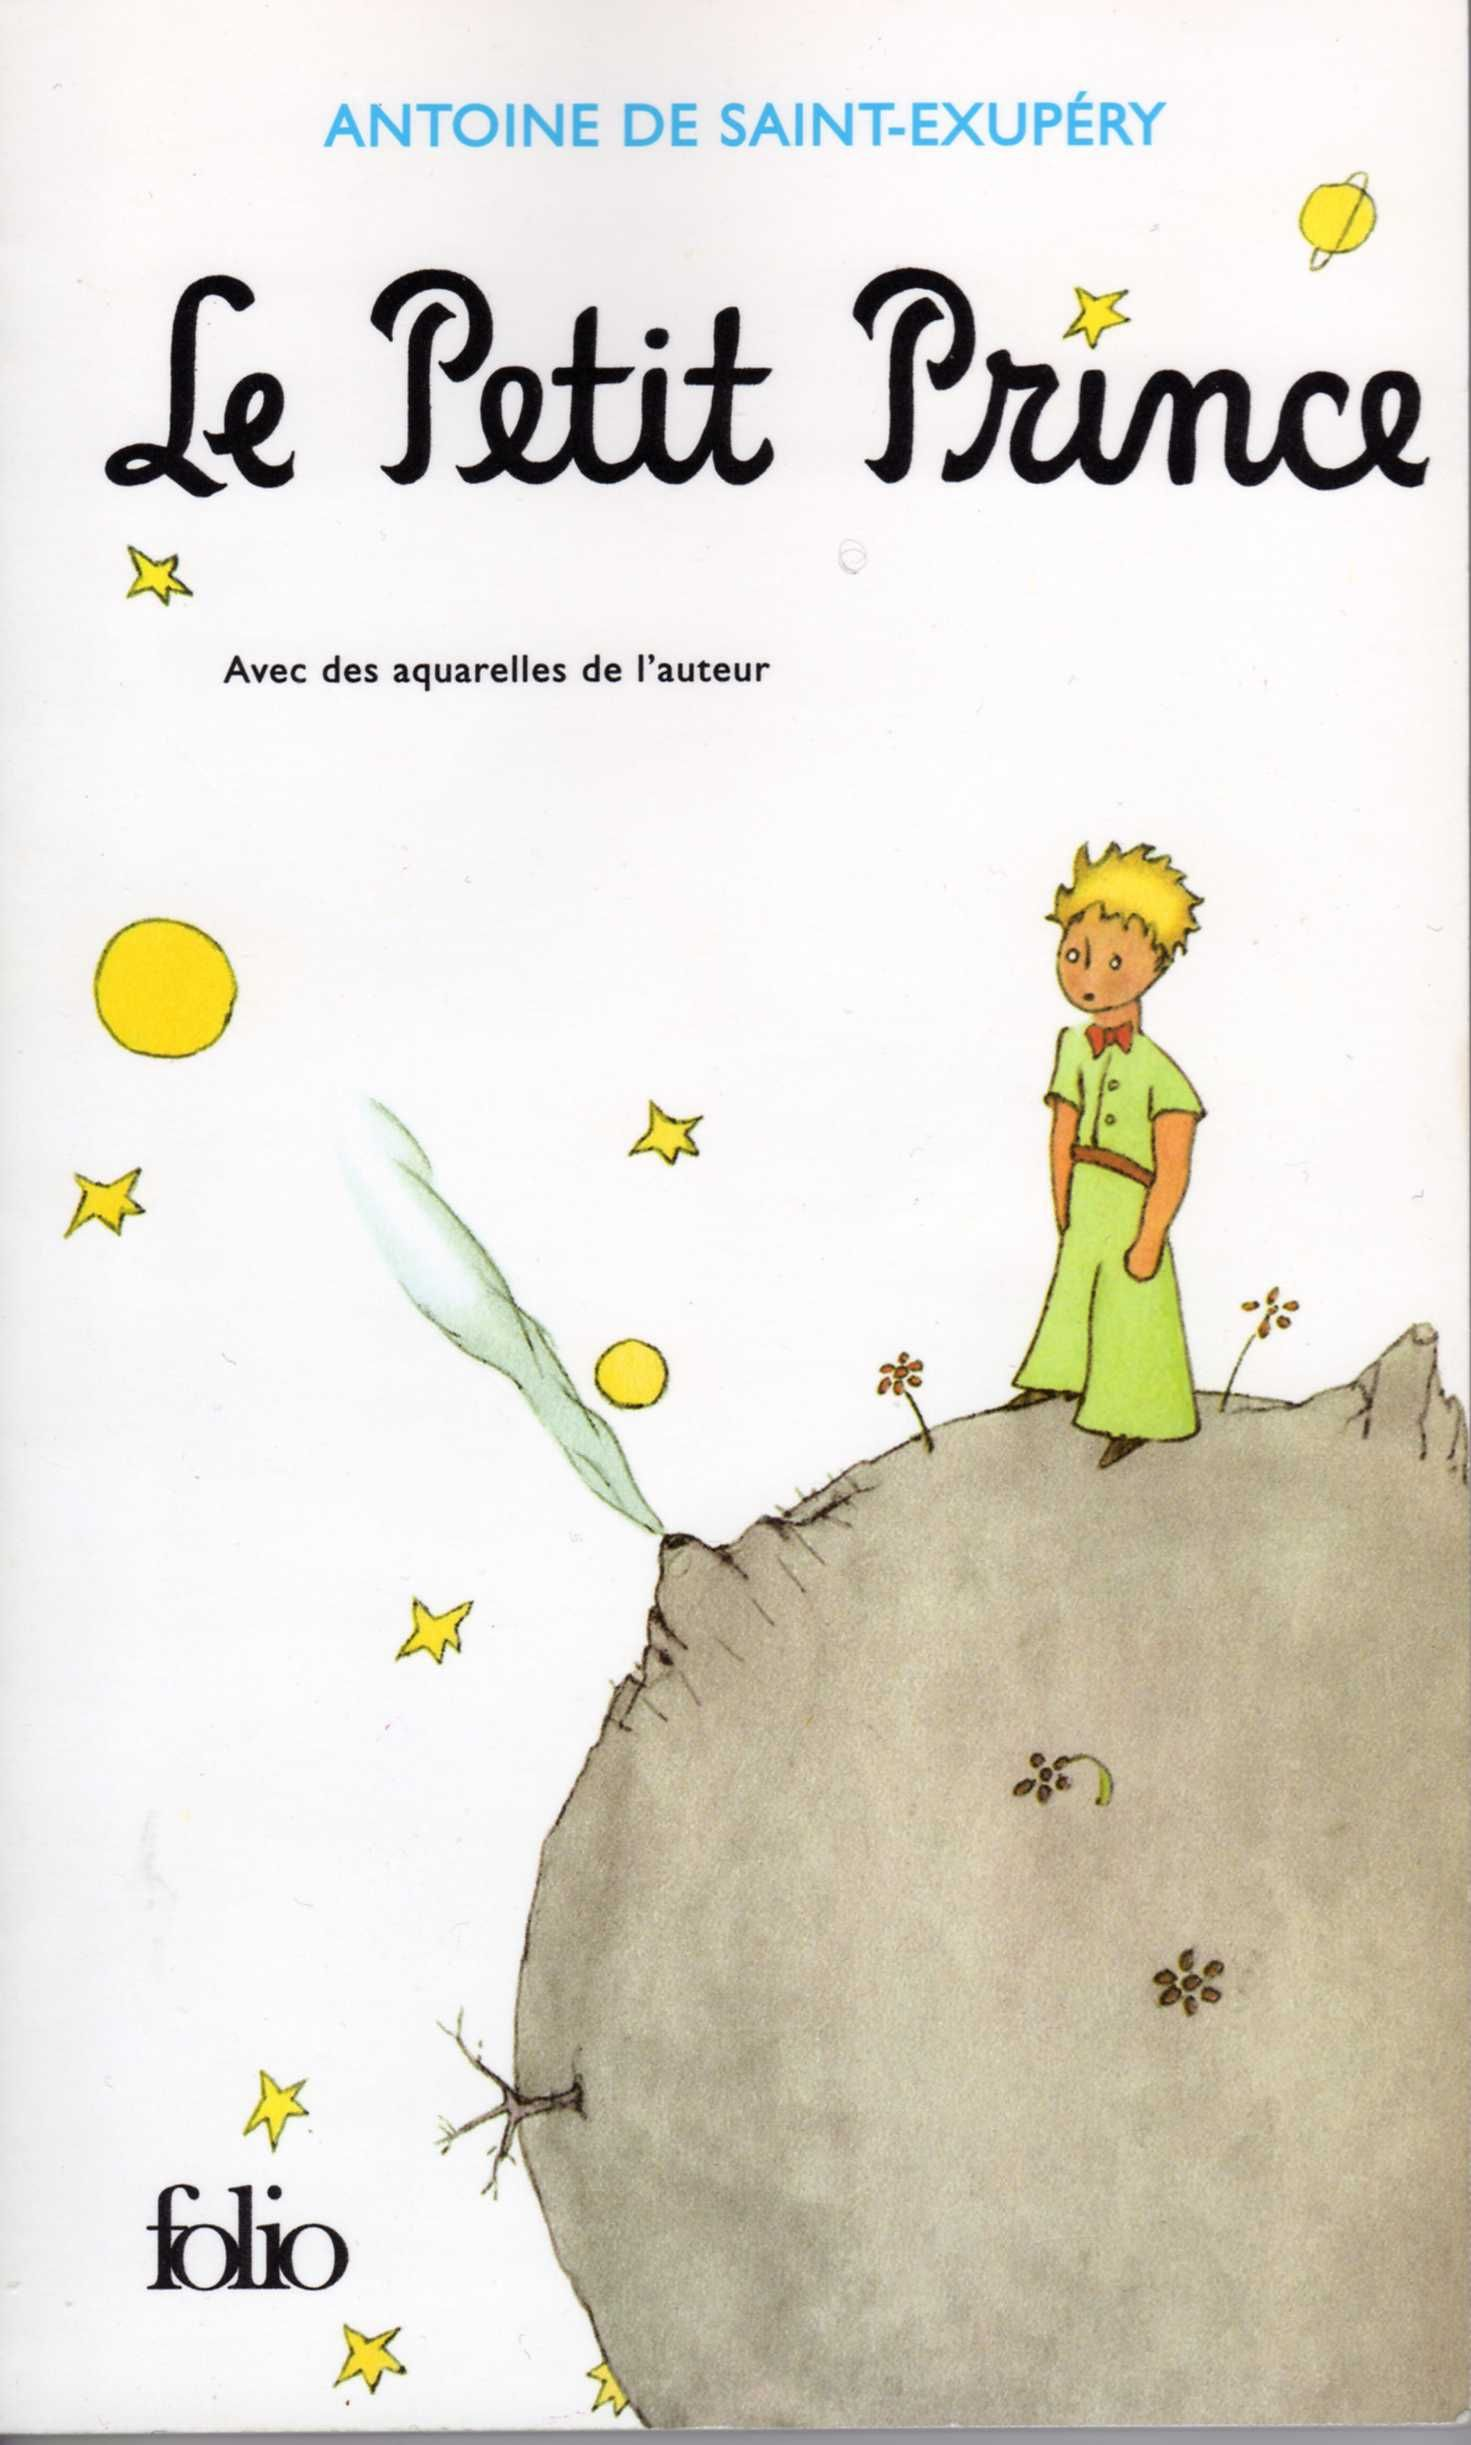 El Principito Never Gets Old One Of My First Childhood Book Highly Recommended Books The Little Prince Favorite Books